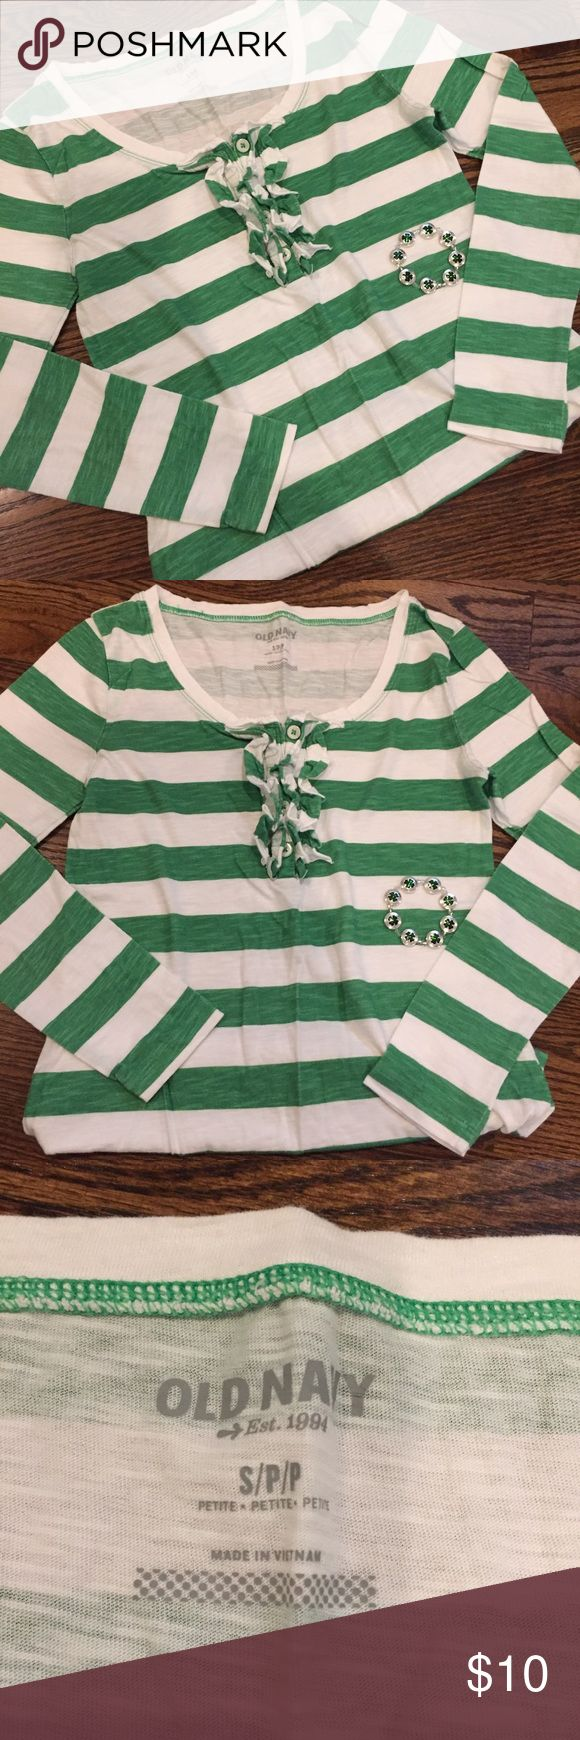 ✨New listing✨Green & white striped Old Navy tee This long sleeved green & white striped tee from Old Navy has a ruffled flounce that gives the ordinary tee silhouette added style.  This curve hugging tee is perfect for spring.  In very good used condition.  Size Small. Old Navy Tops